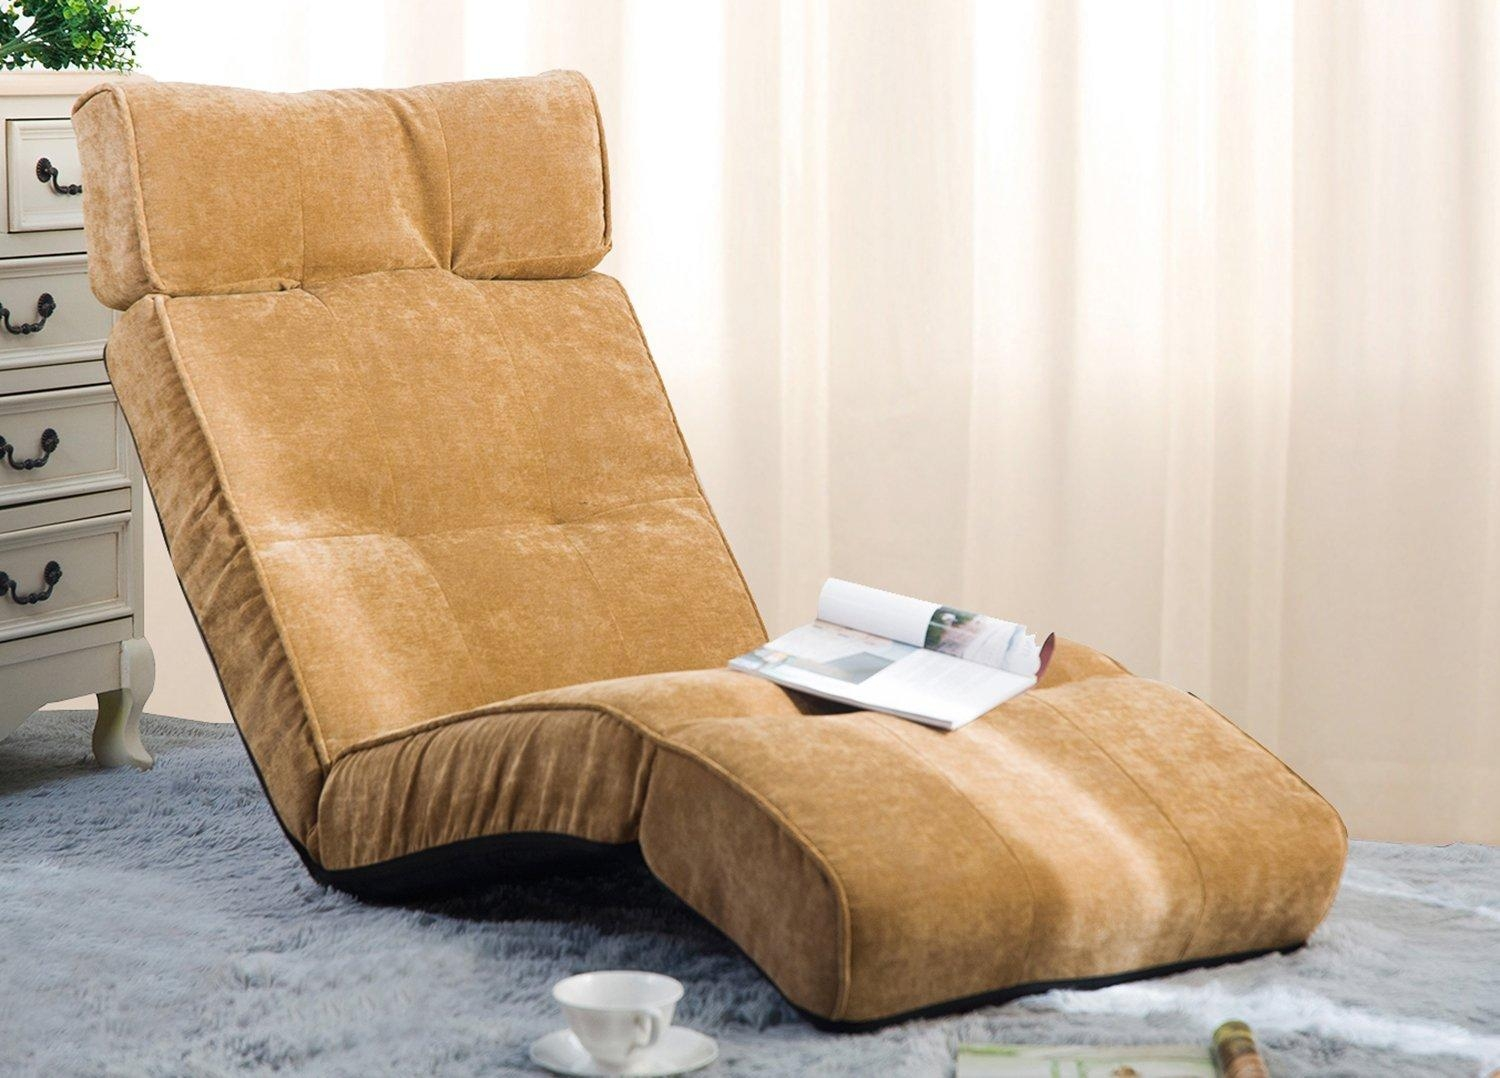 Merax Adjustable Folding Floor Couch Lounger Sofa Chair – Folding With Regard To Lazy Sofa Chairs (Image 13 of 20)